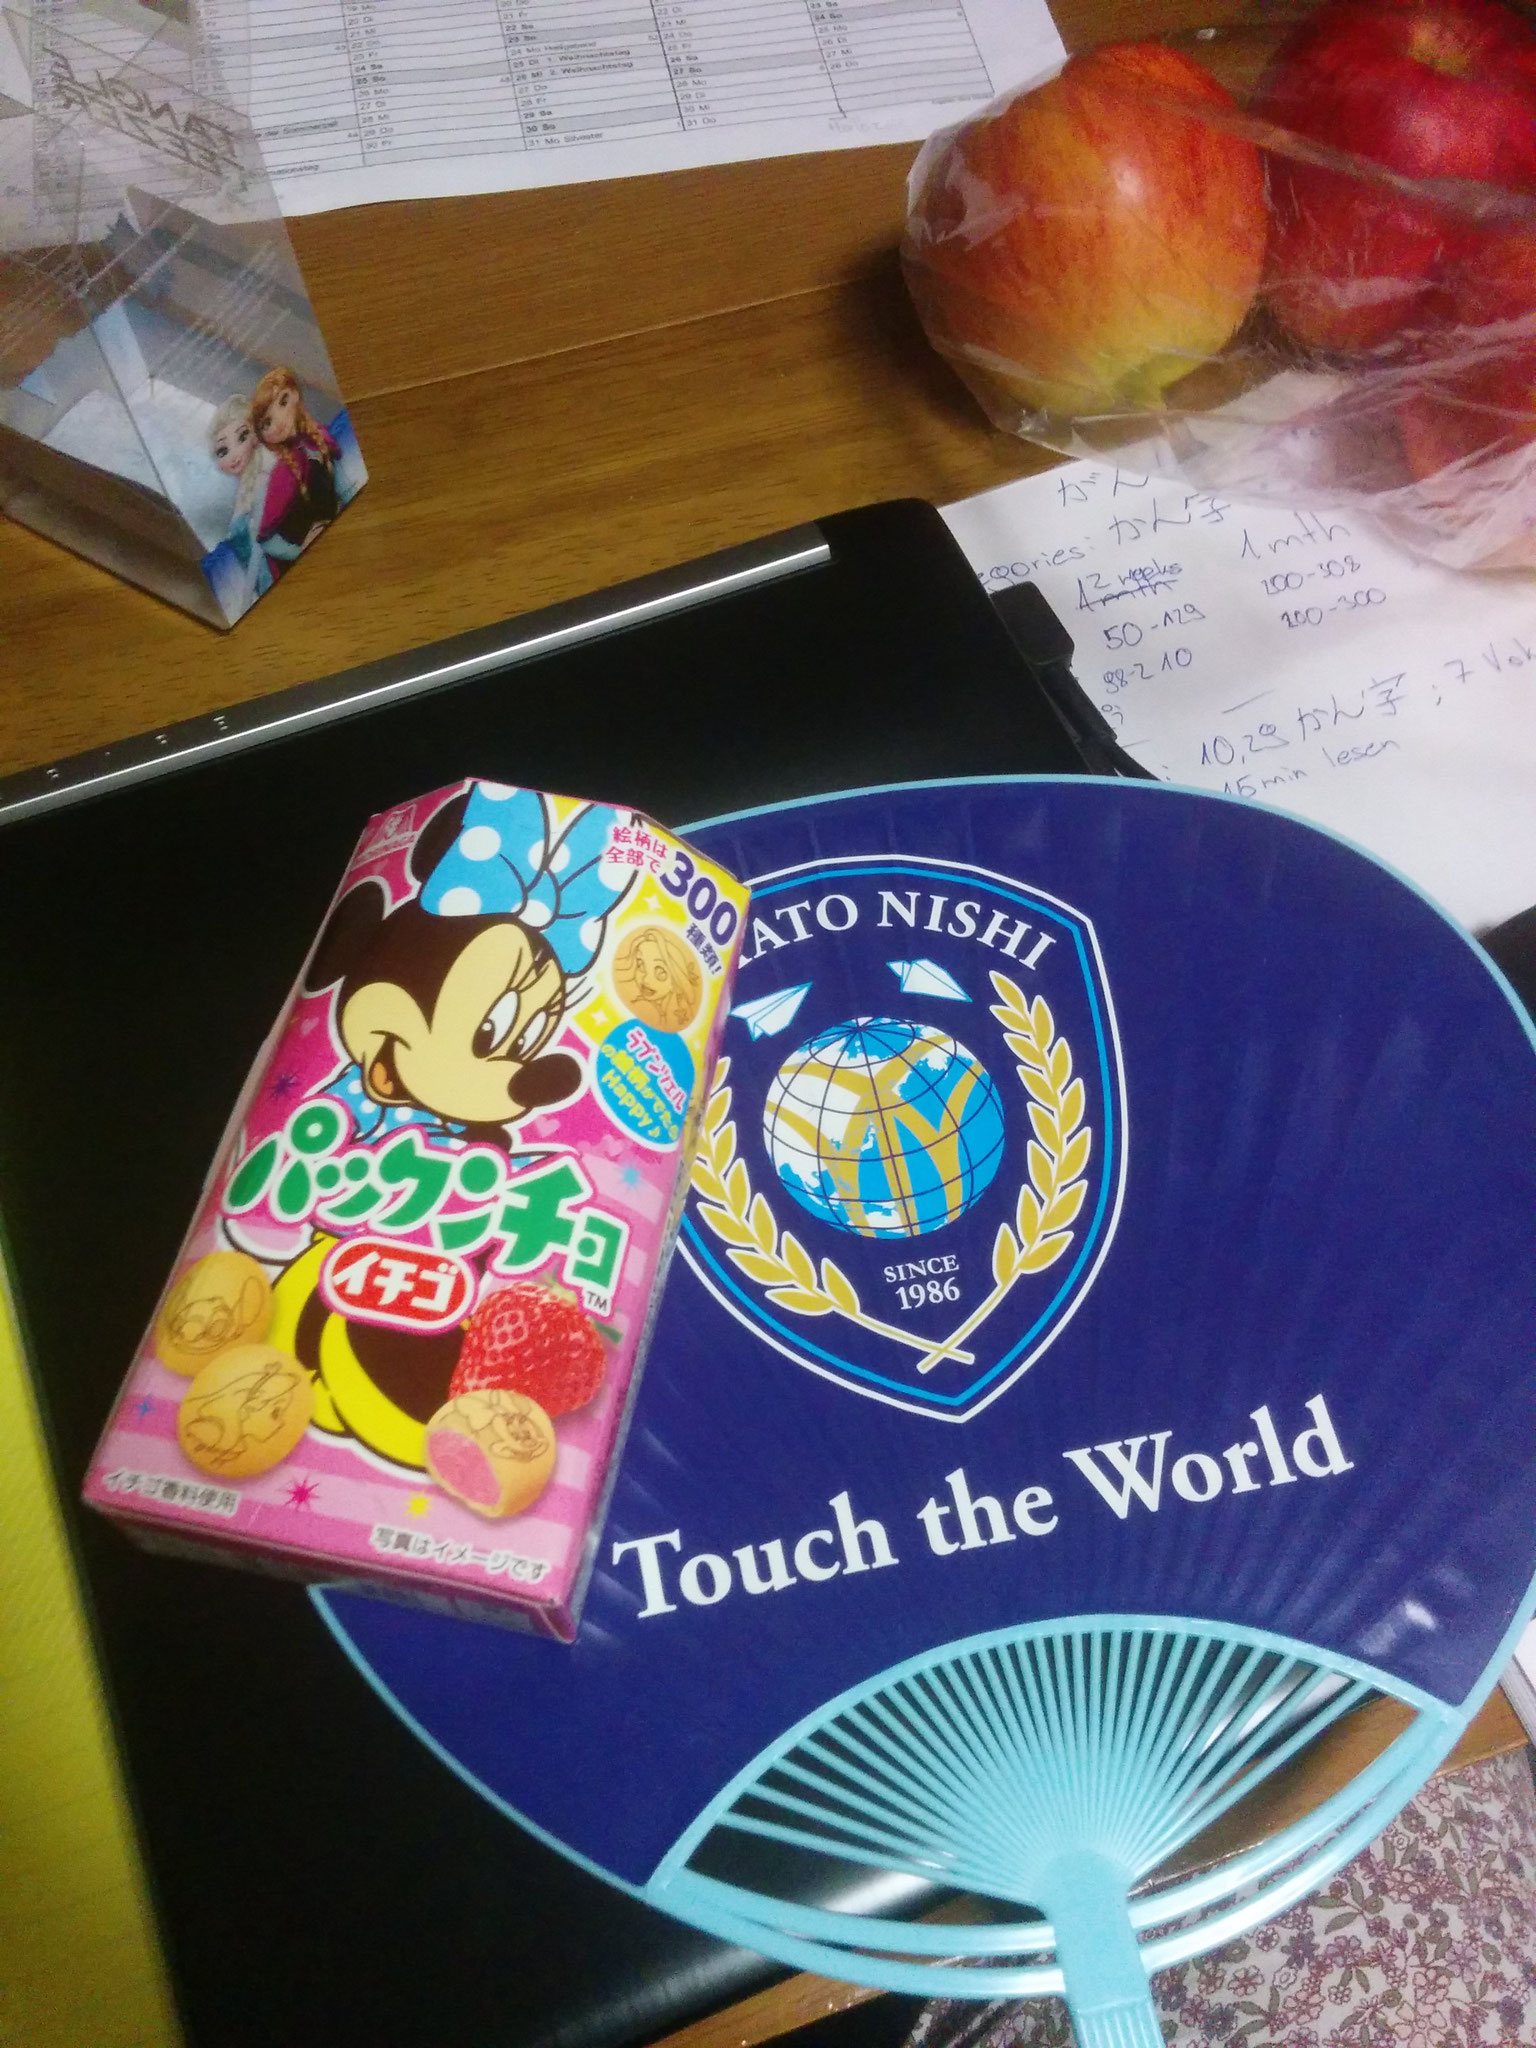 9 sweets I got from the girl I use to walk to school with (THANK YOU) and the fan I lost the next day :(